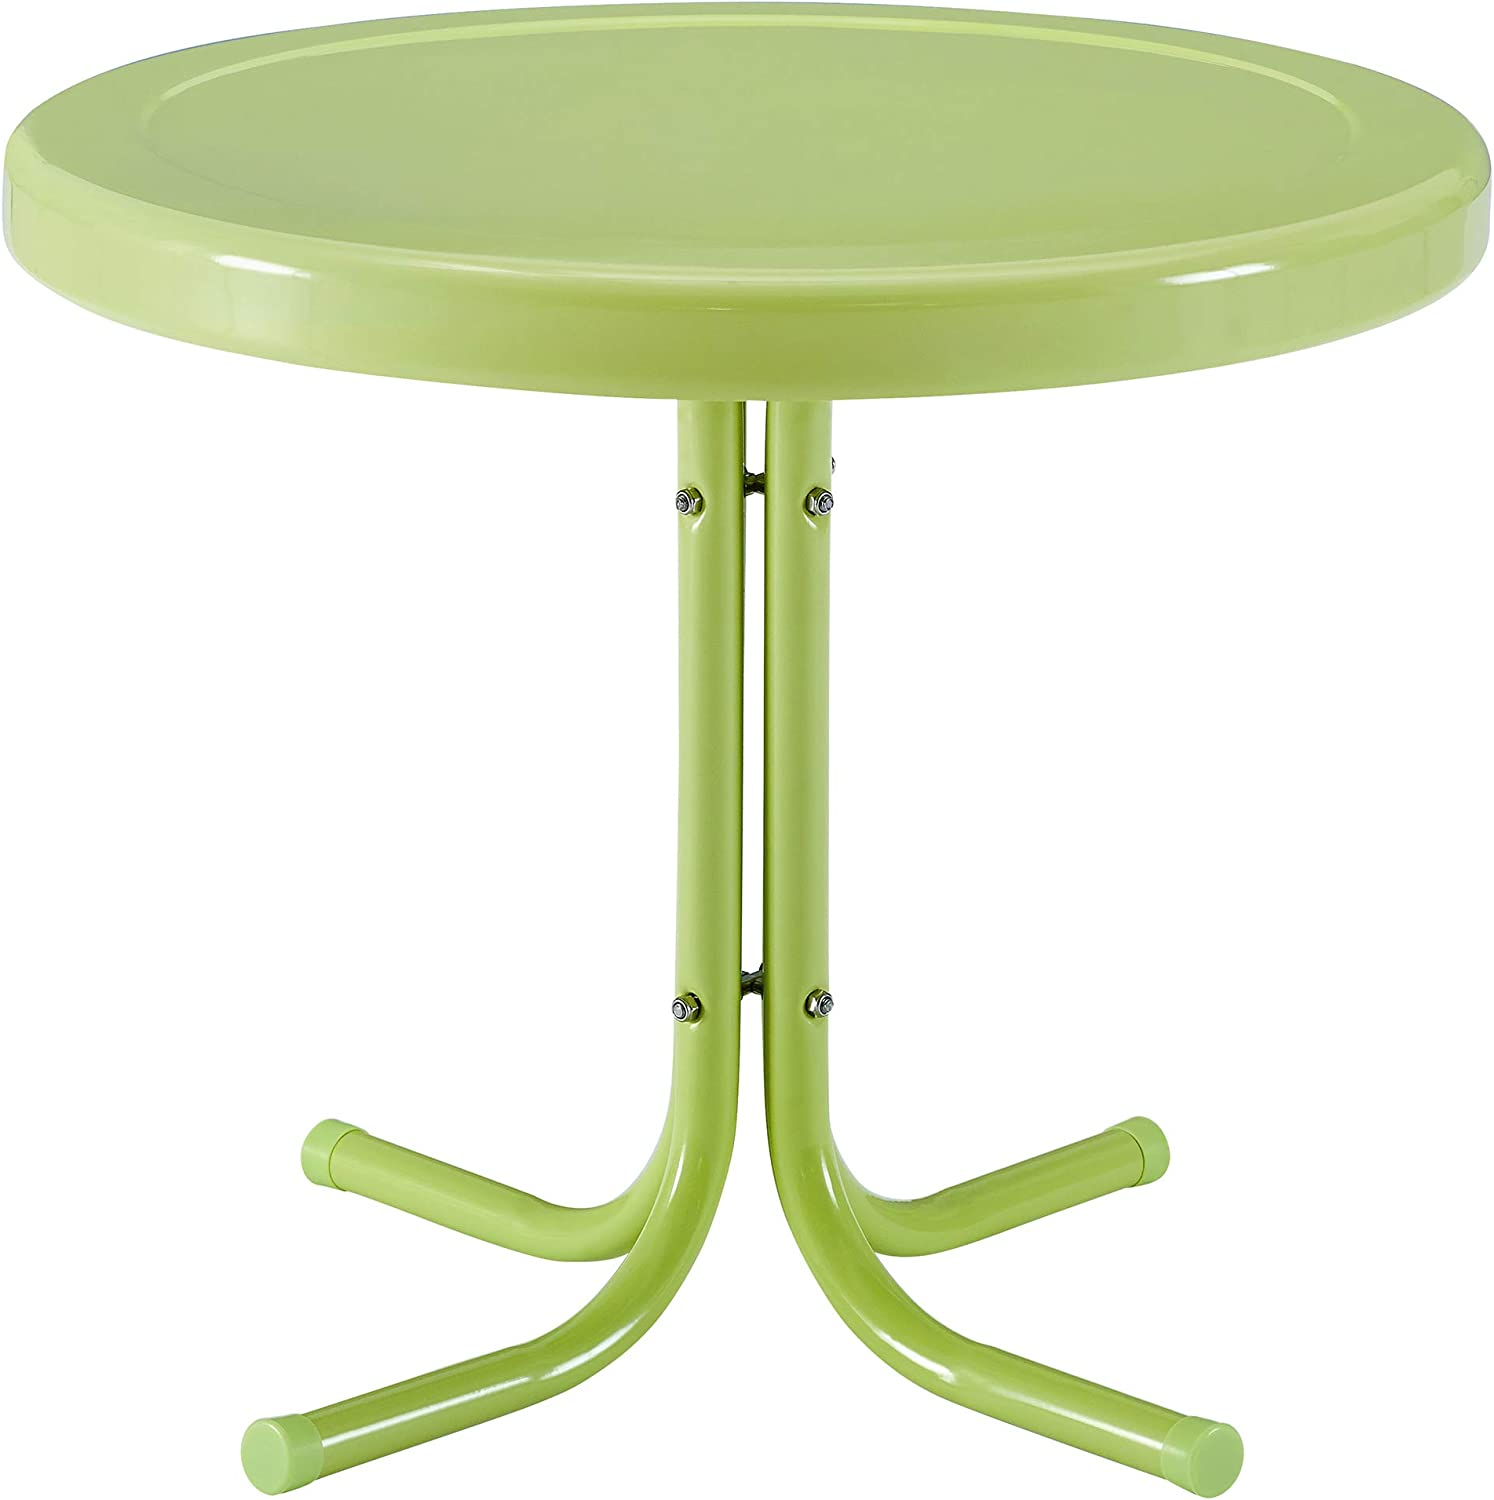 Key Lime Crosley Furniture KO10004KL Griffith 3-Piece Retro Metal Outdoor Seating Set with 2 Chairs and Side Table